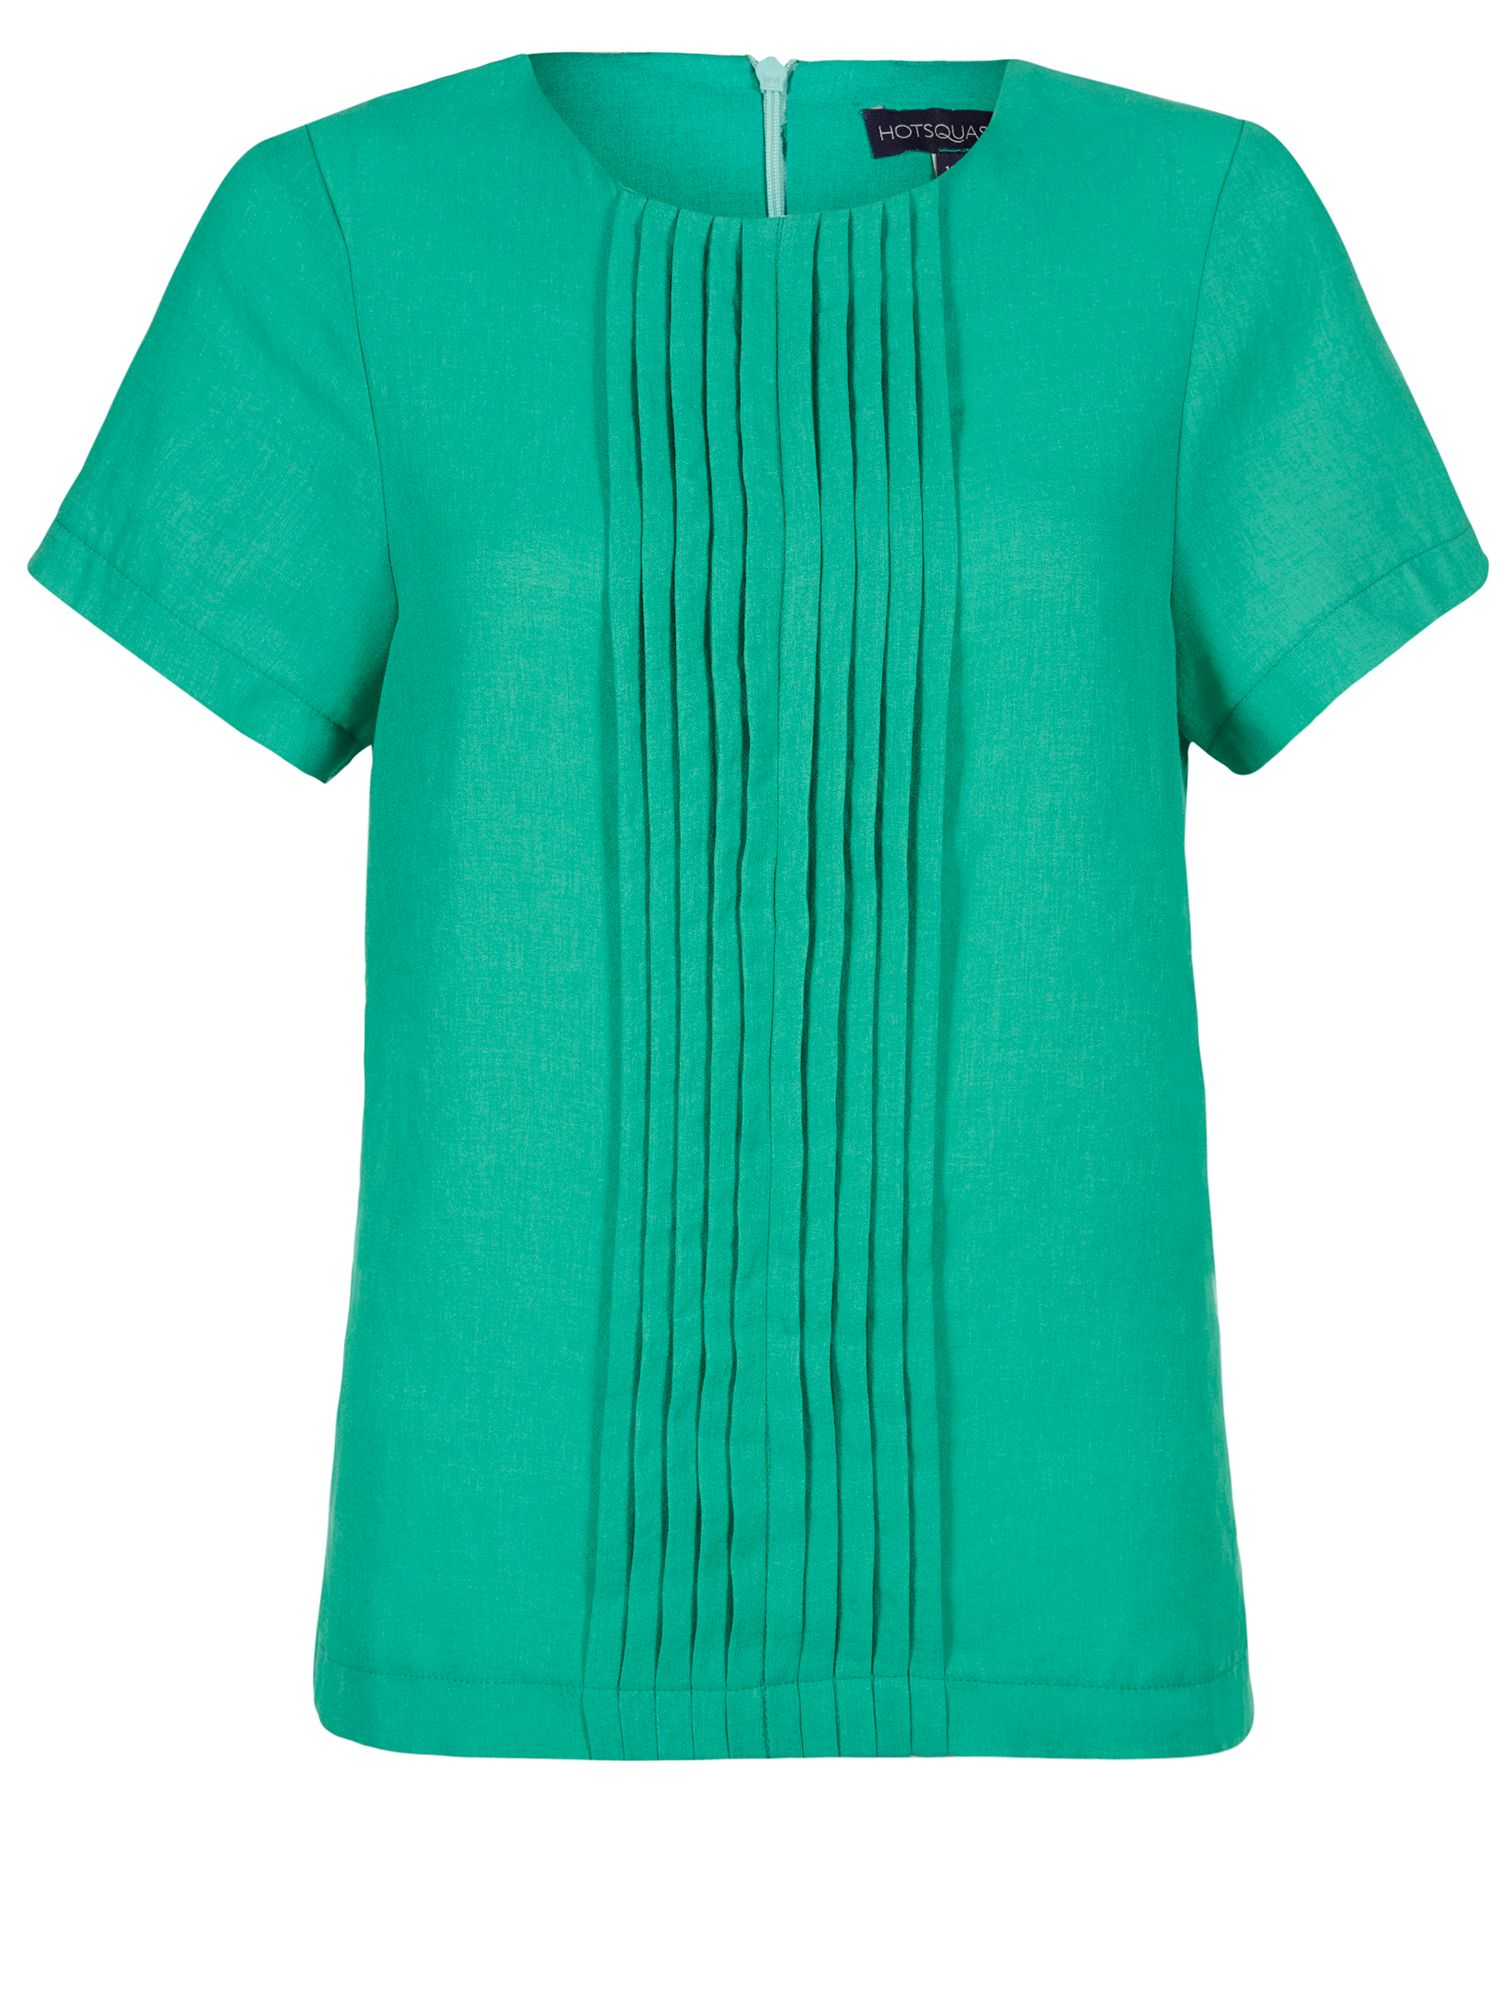 Crepe pintuck tee shirt in clever fabric